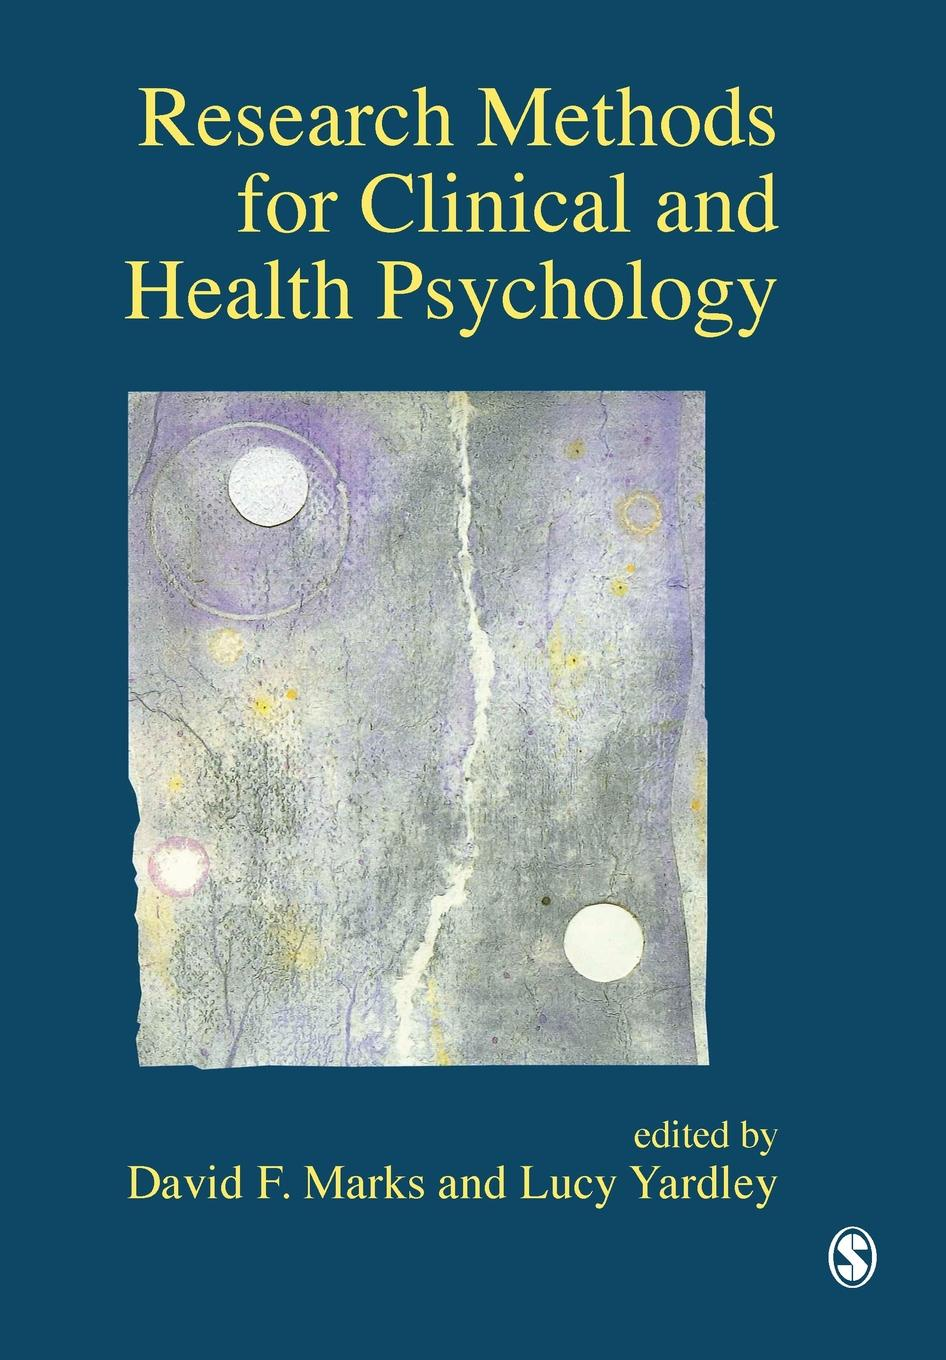 David F. Marks, Lucy Yardley Research Methods for Clinical and Health Psychology цена в Москве и Питере